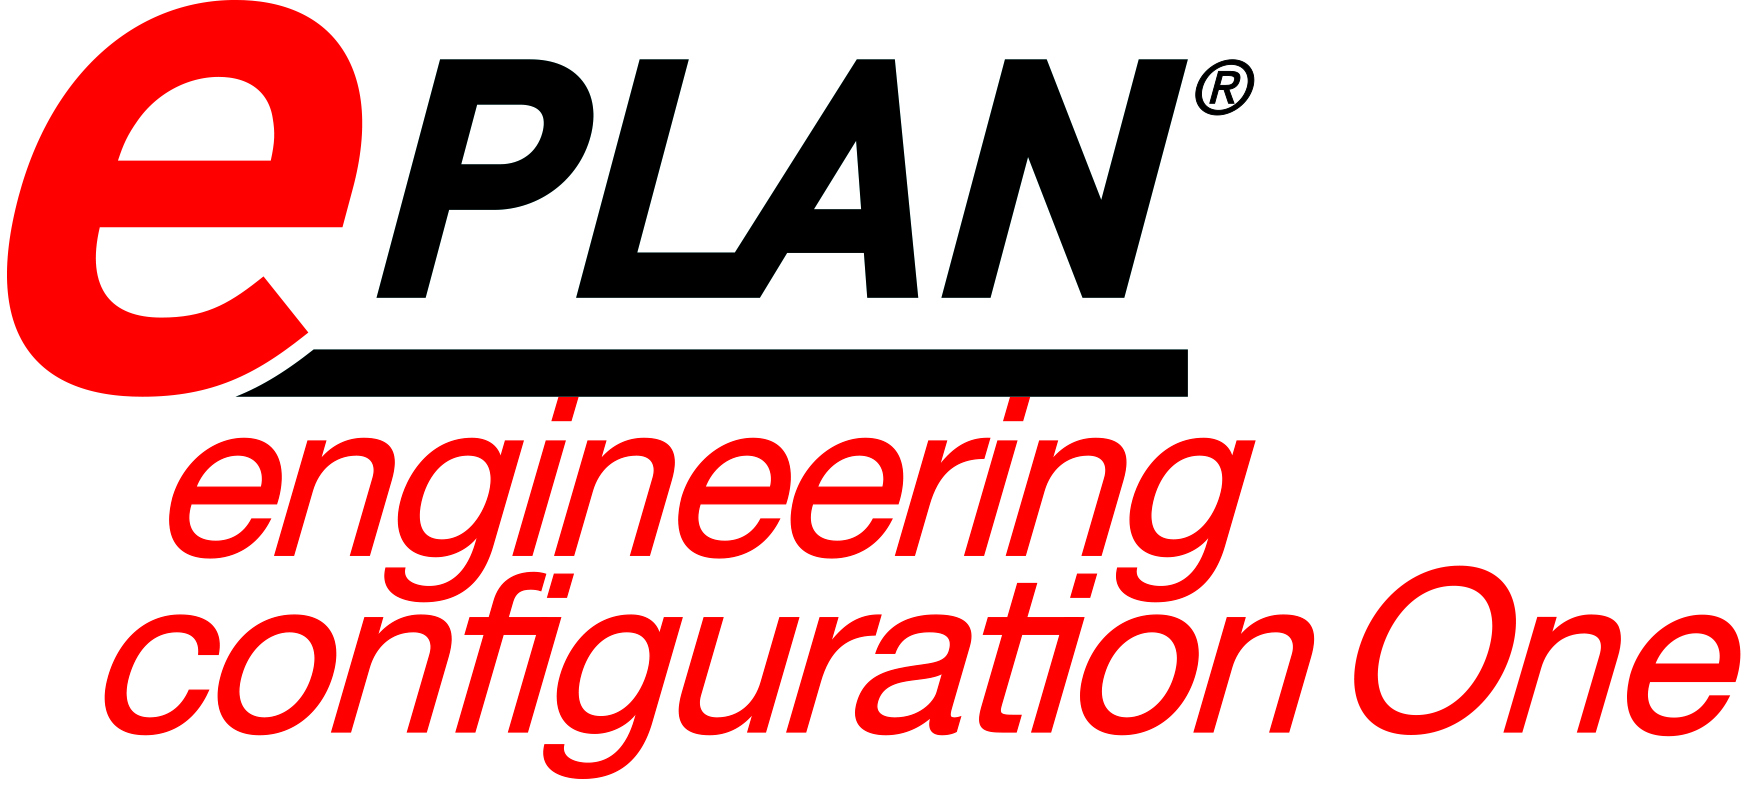 EPLAN Engineering Configuration One 2.3软件下载EEC One 2.3